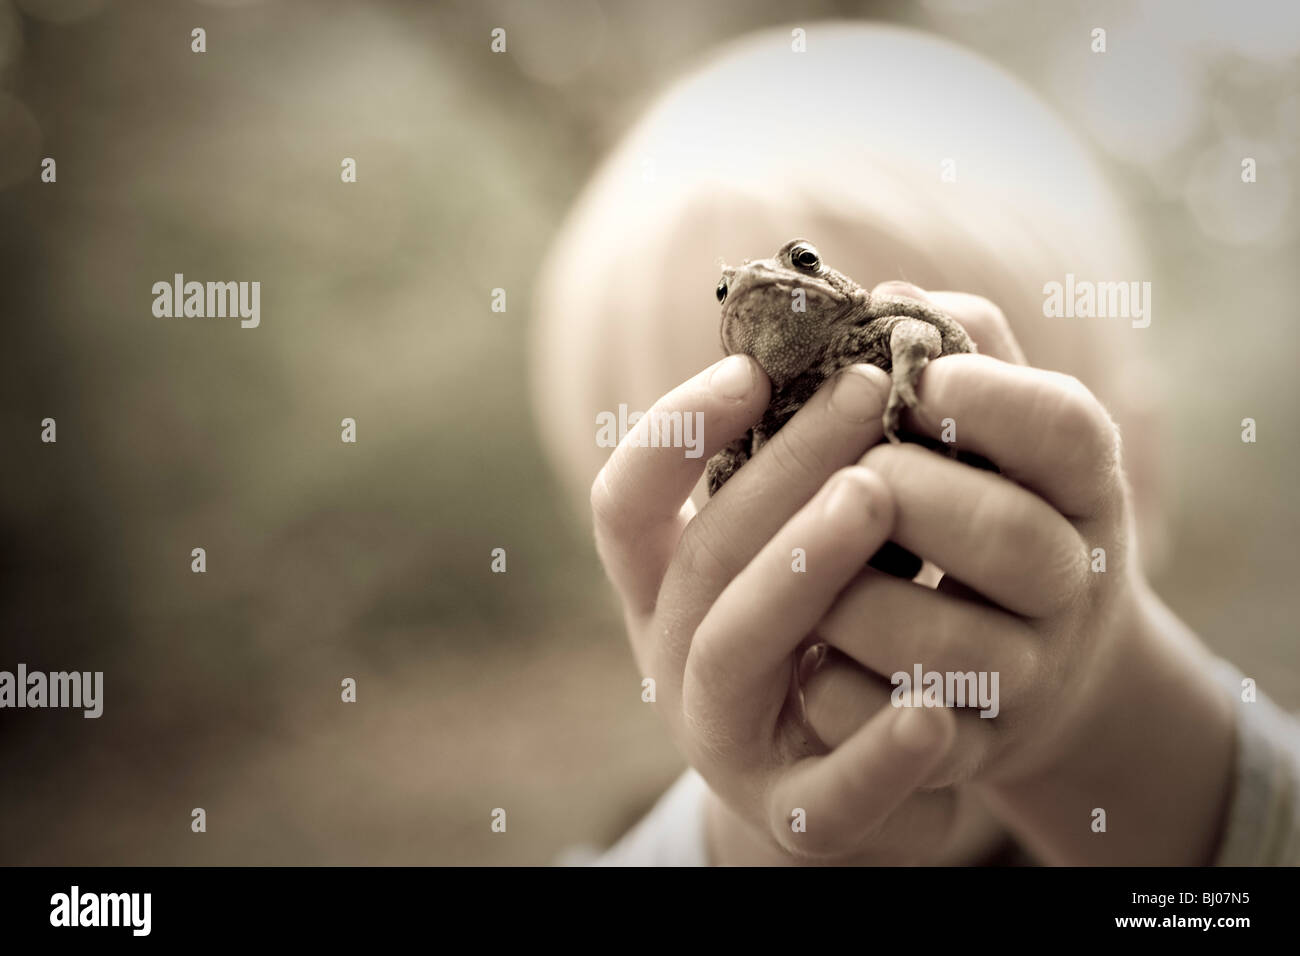 Young child holding up a toad. - Stock Image